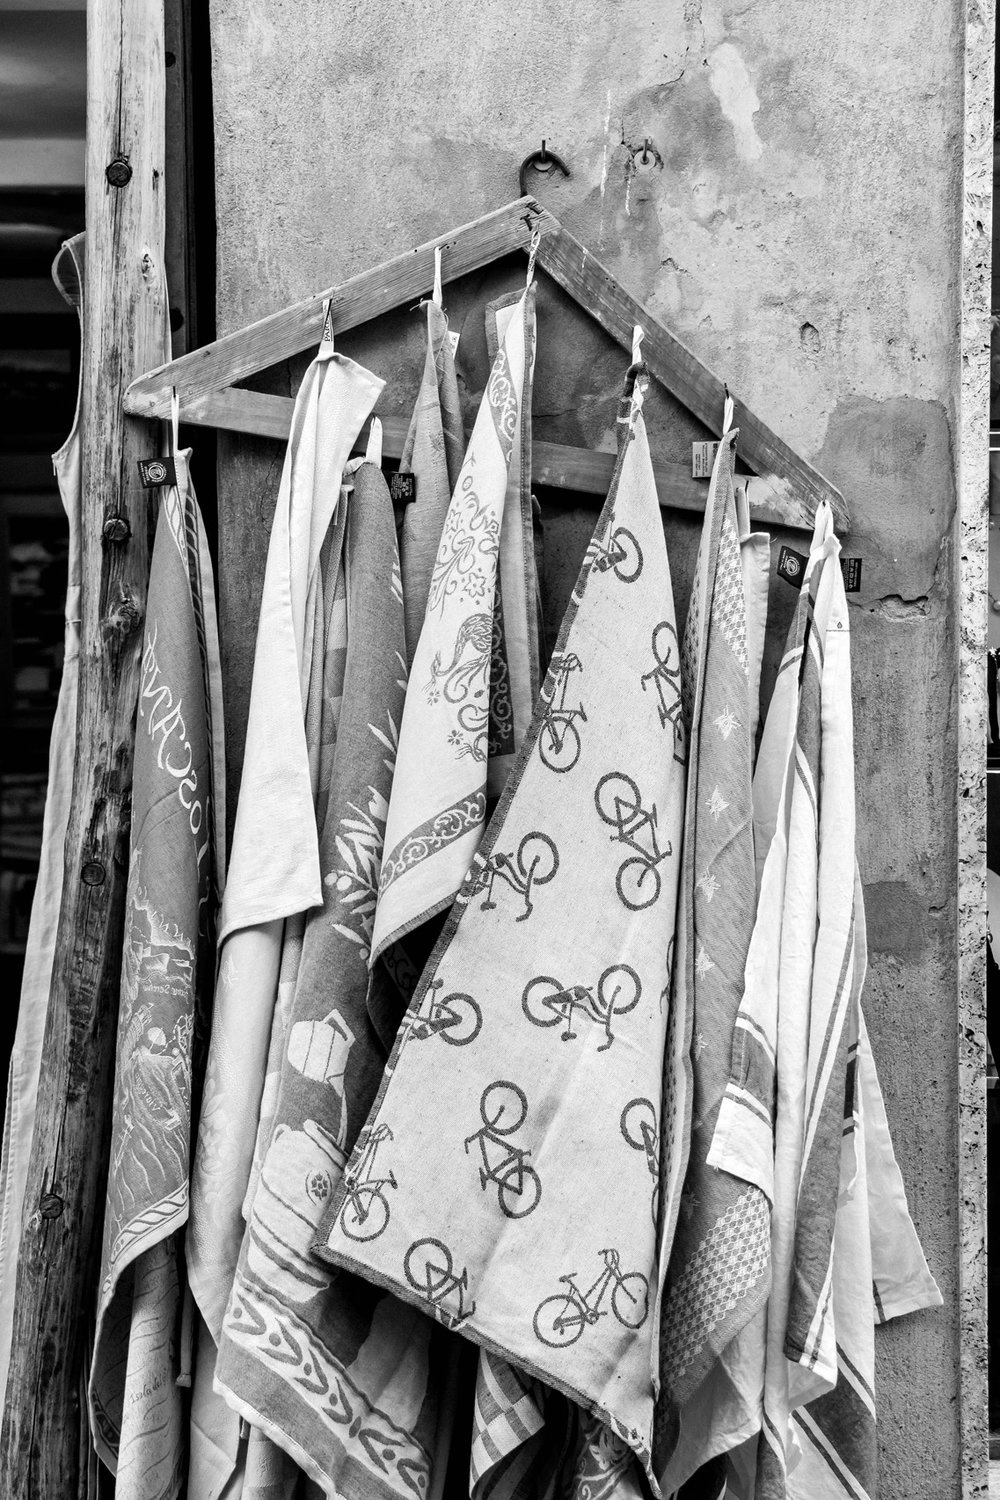 Linen shopping in Pienza, Tuscany